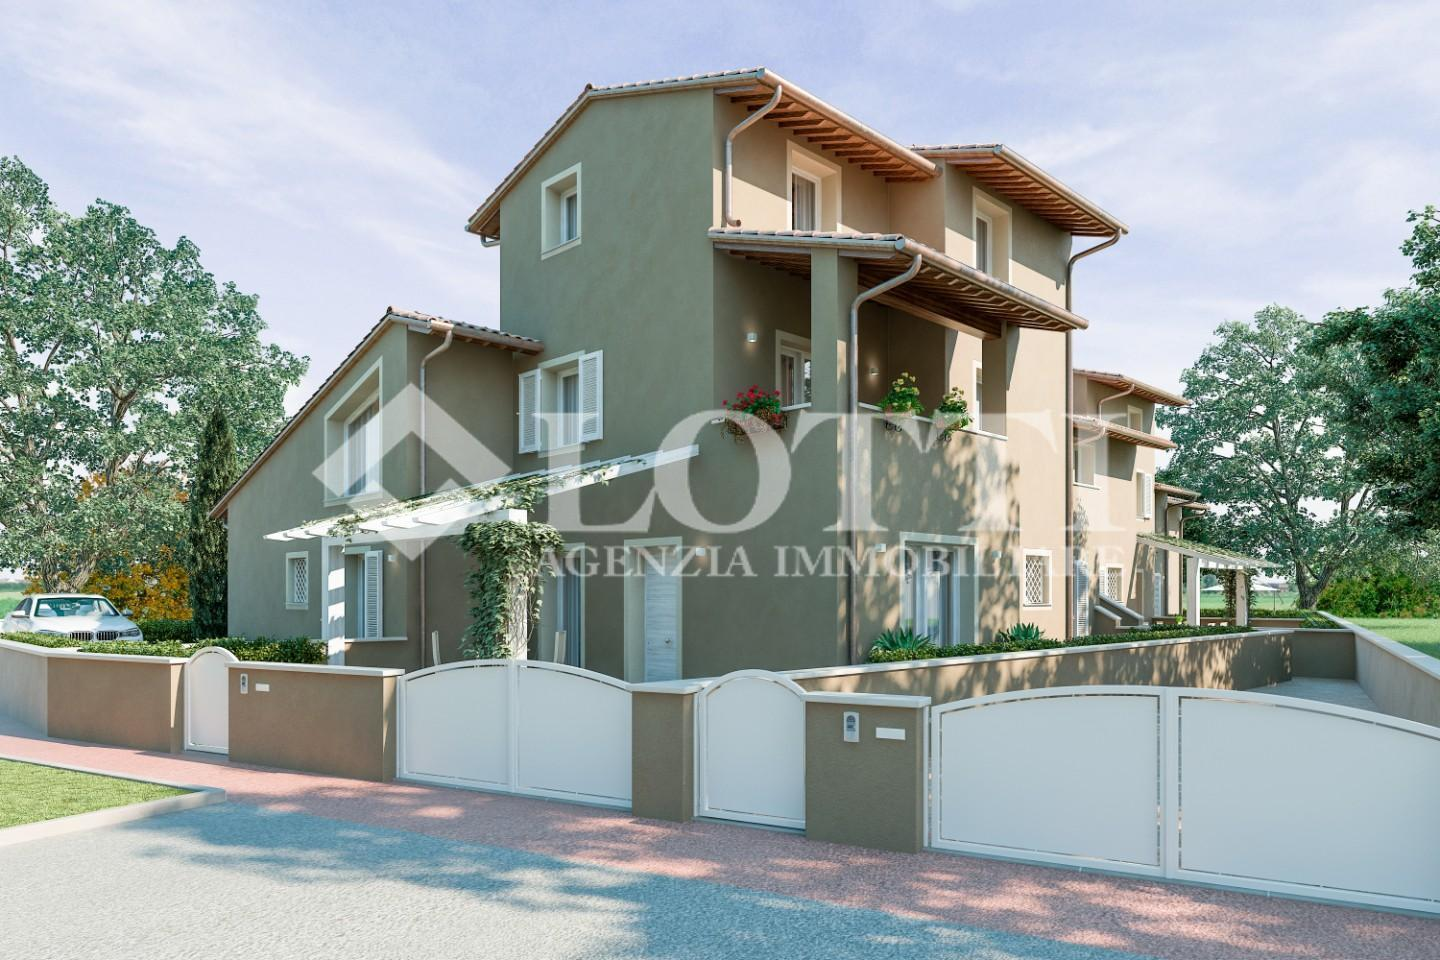 Apartment for sale, ref. 745-A/2